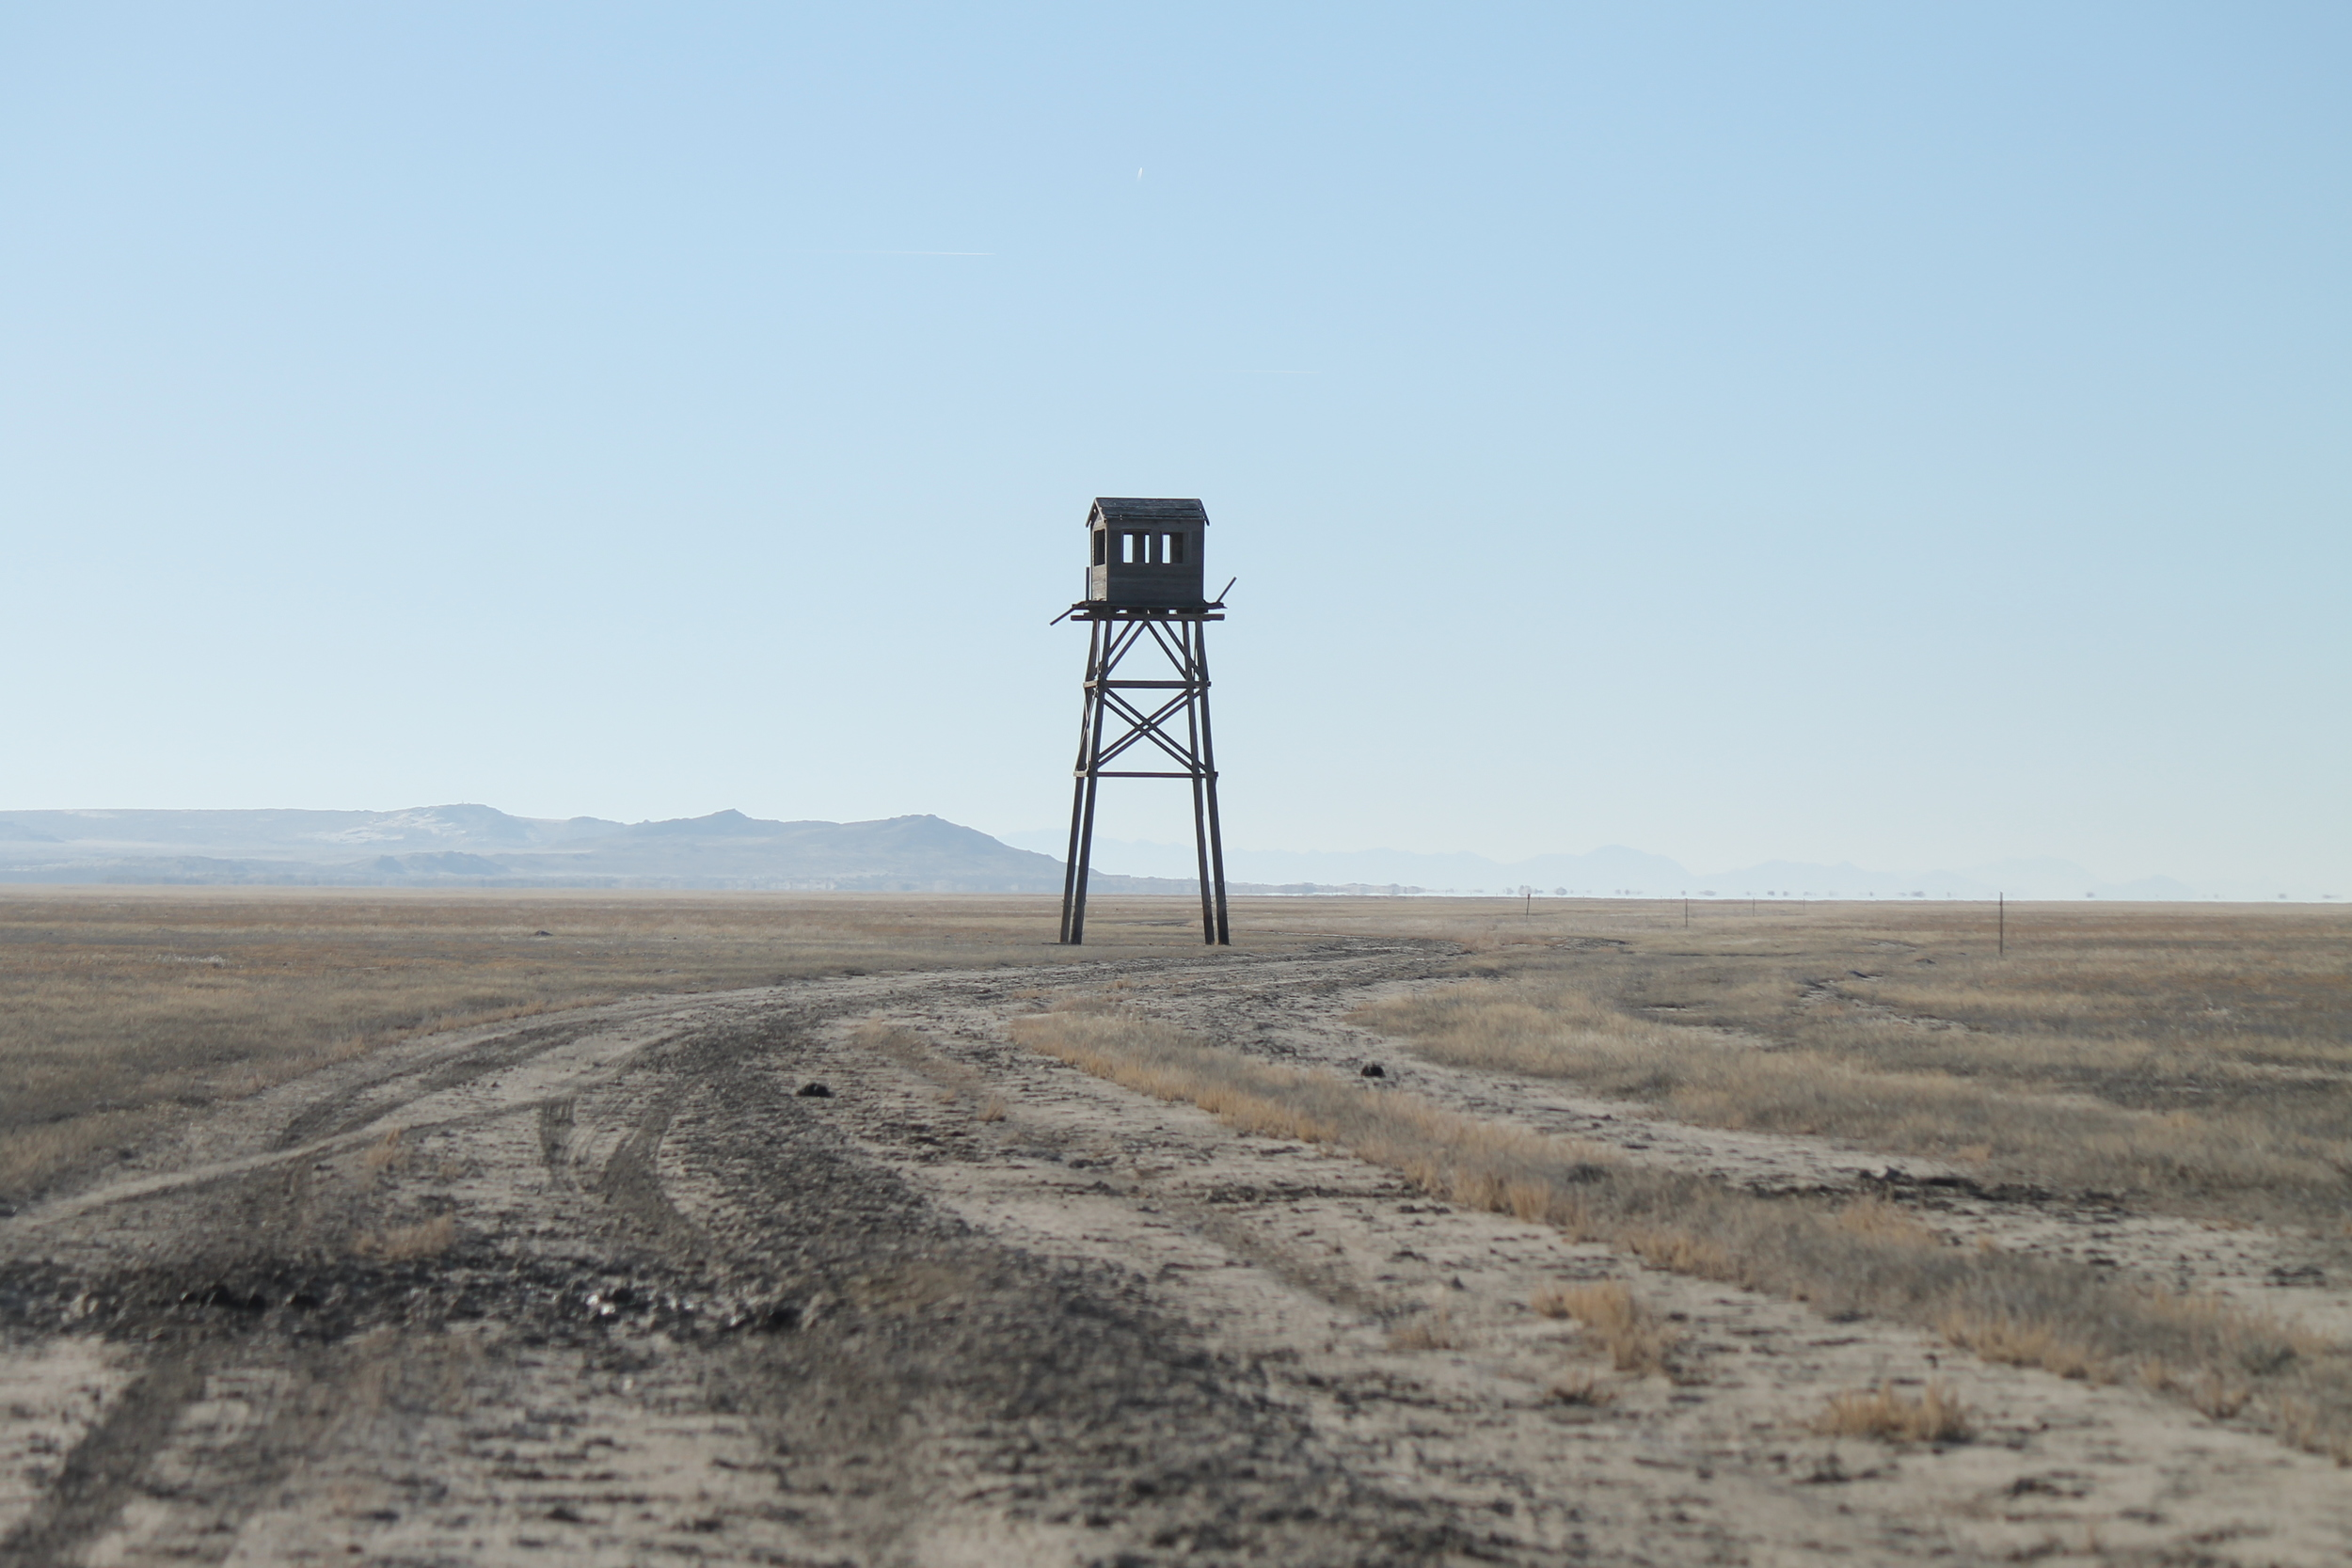 Old bombing practice range observation tower